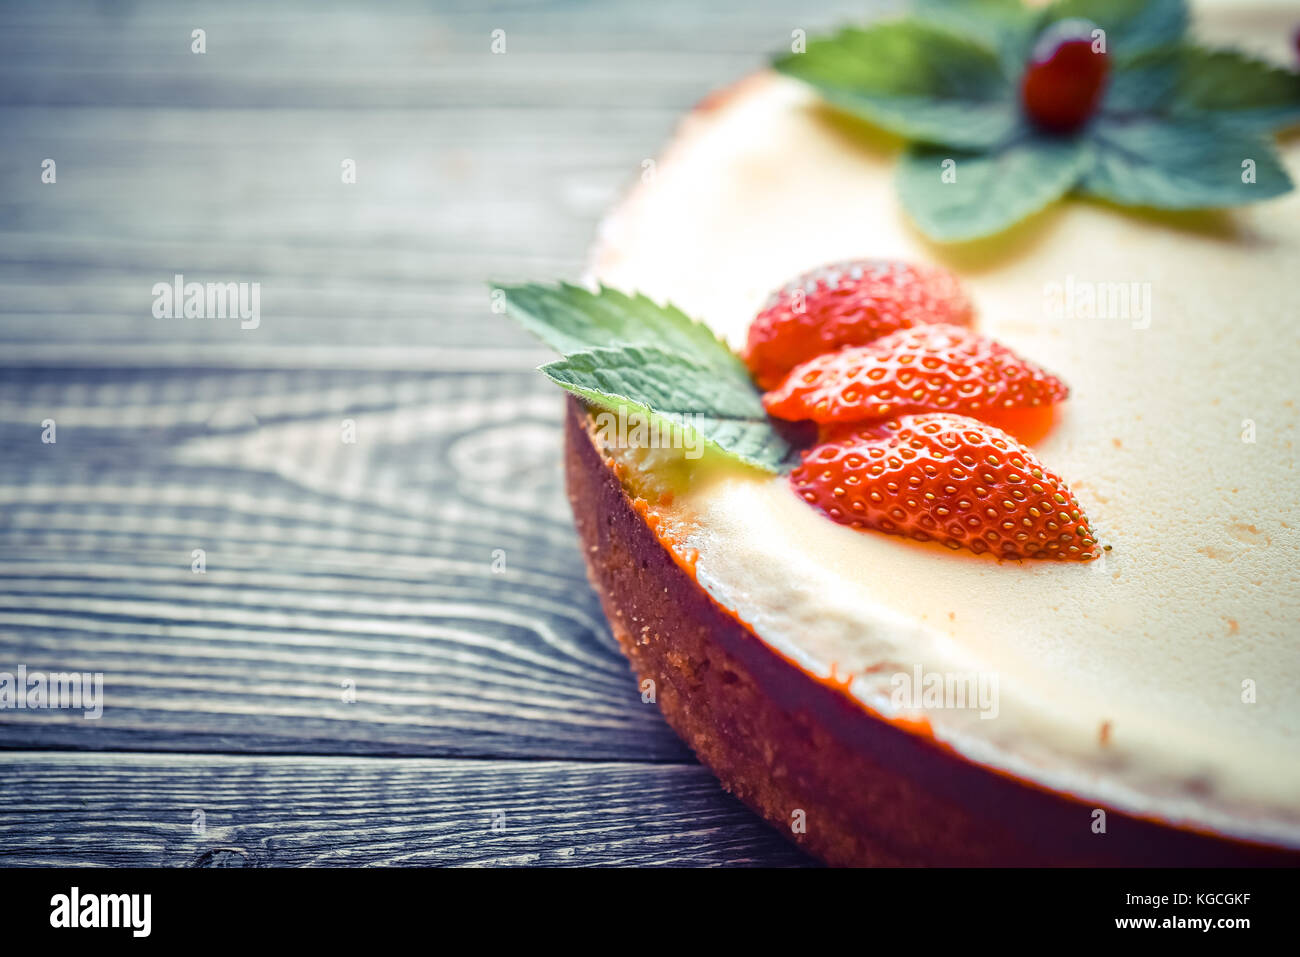 Fresh cheesecake with berries on a wooden background. Copy space - Stock Image